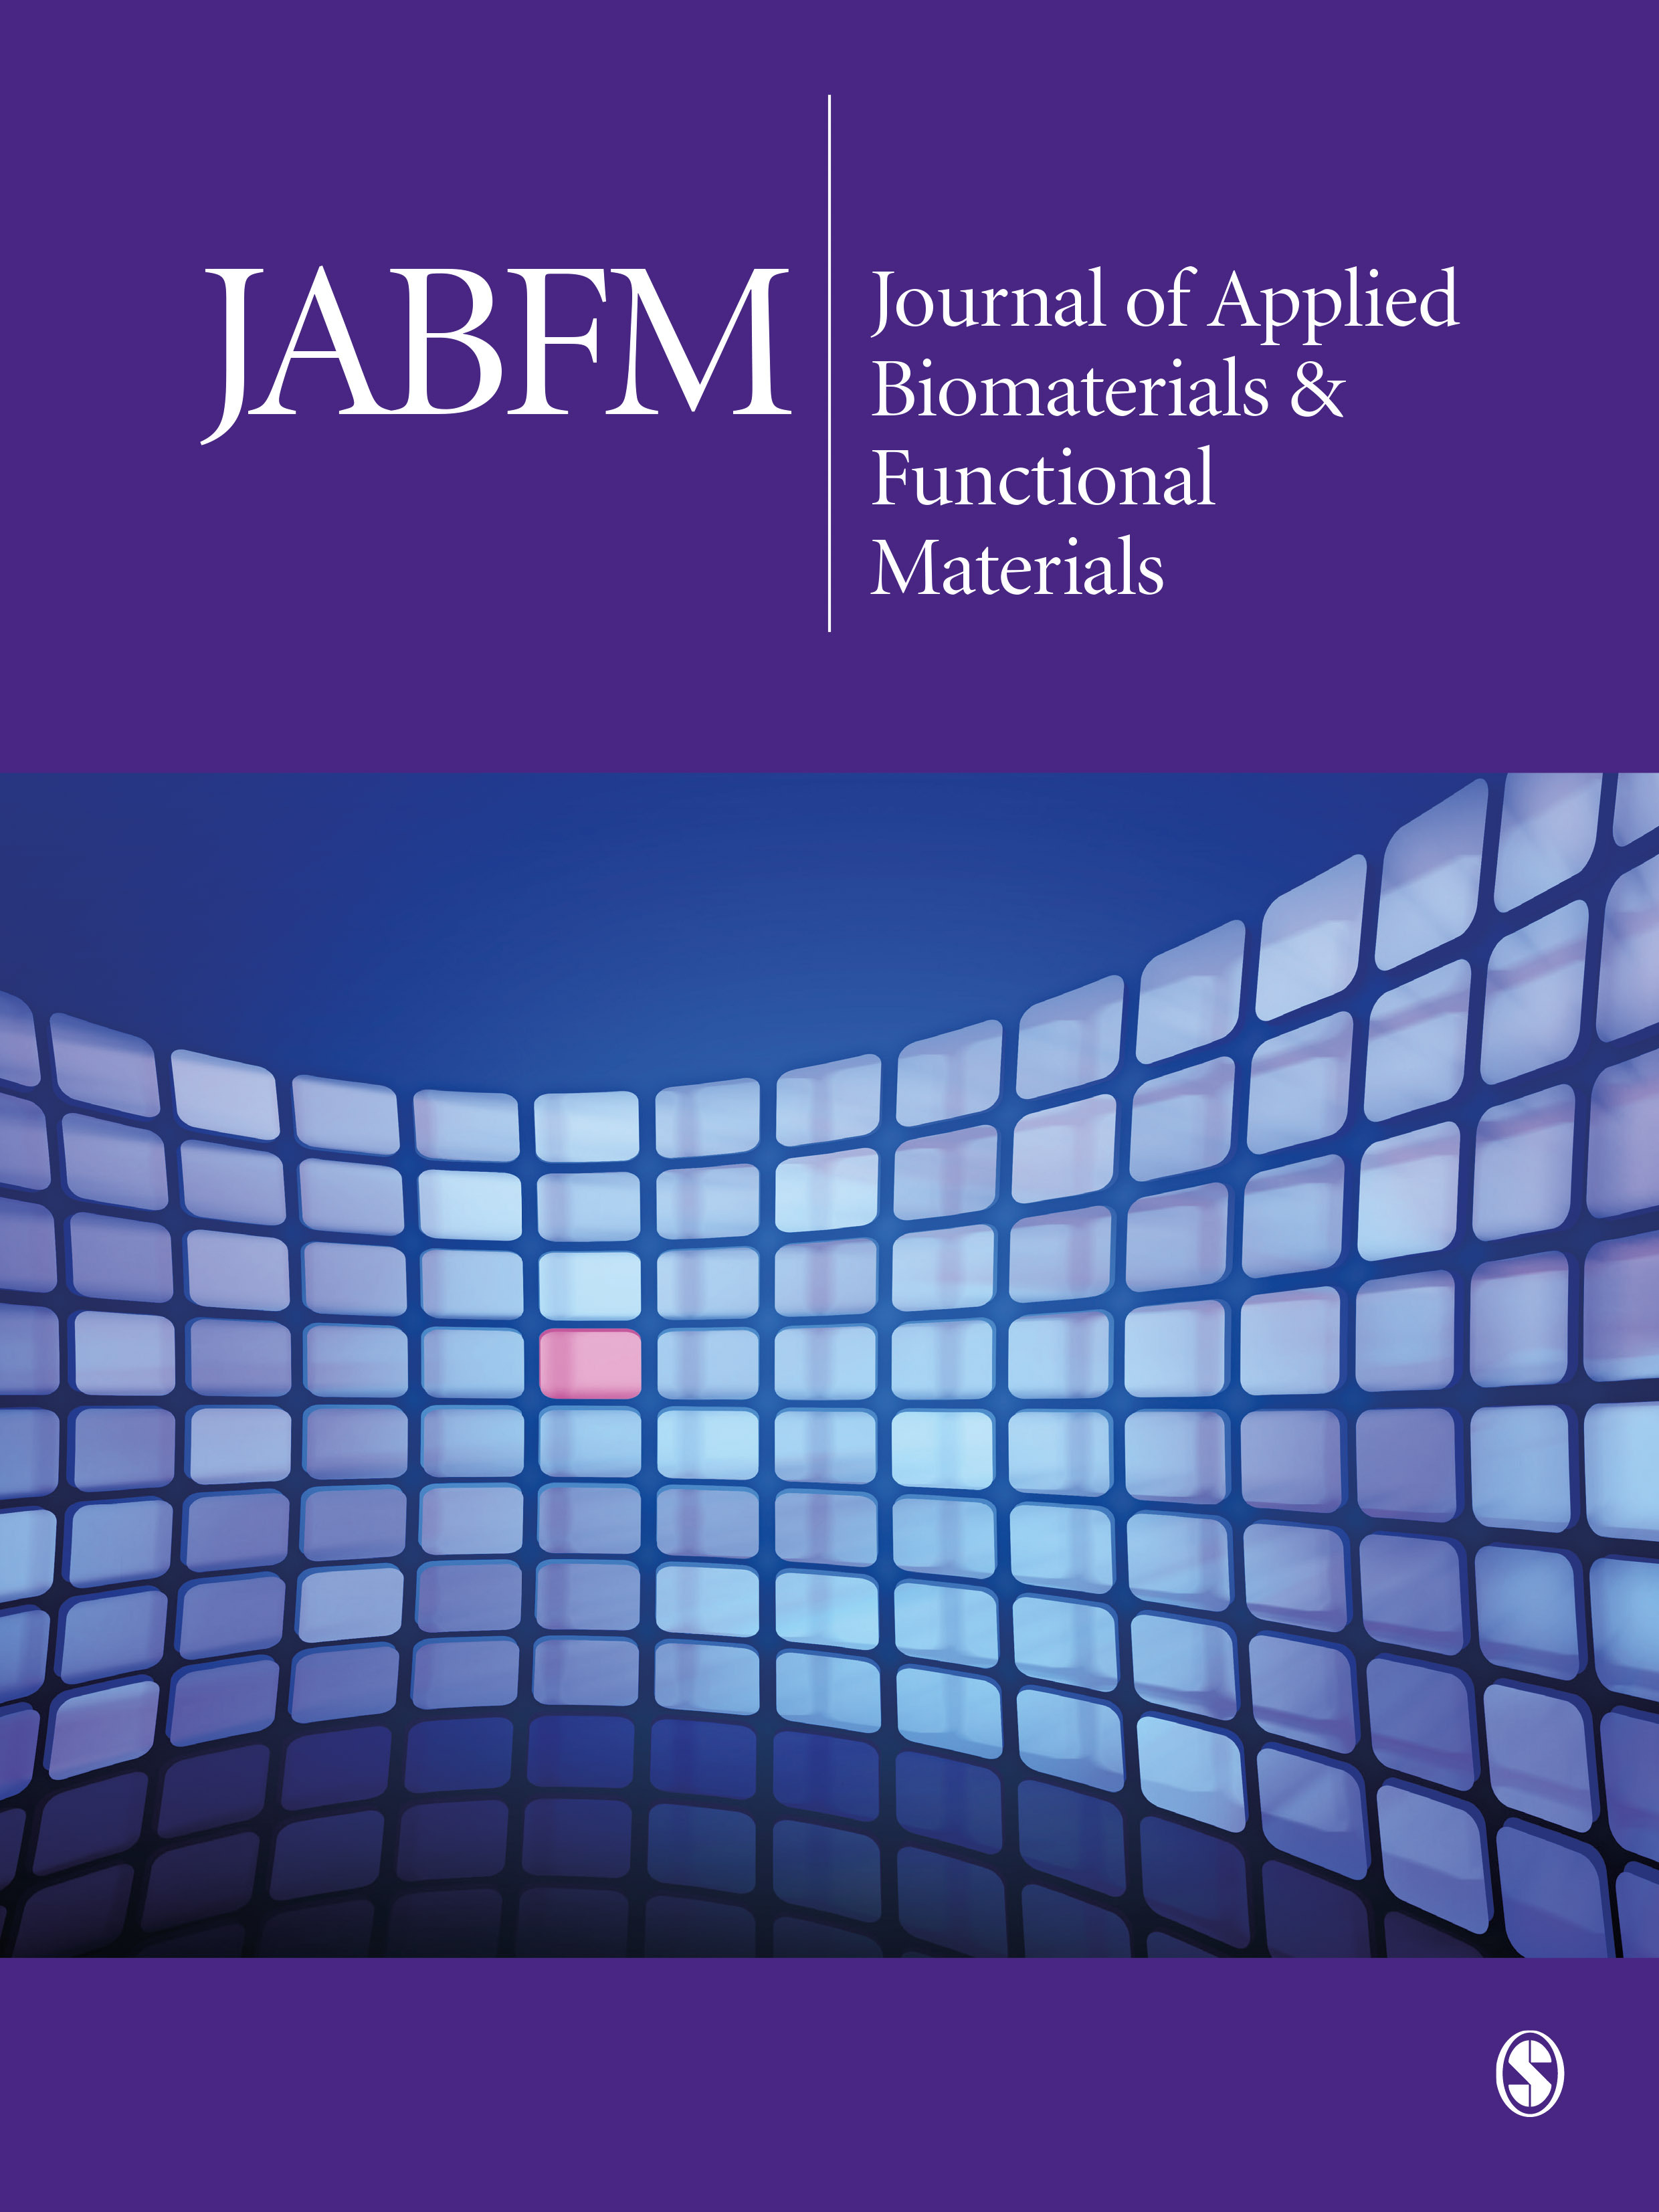 Journal of Applied Biomaterials & Functional Materials